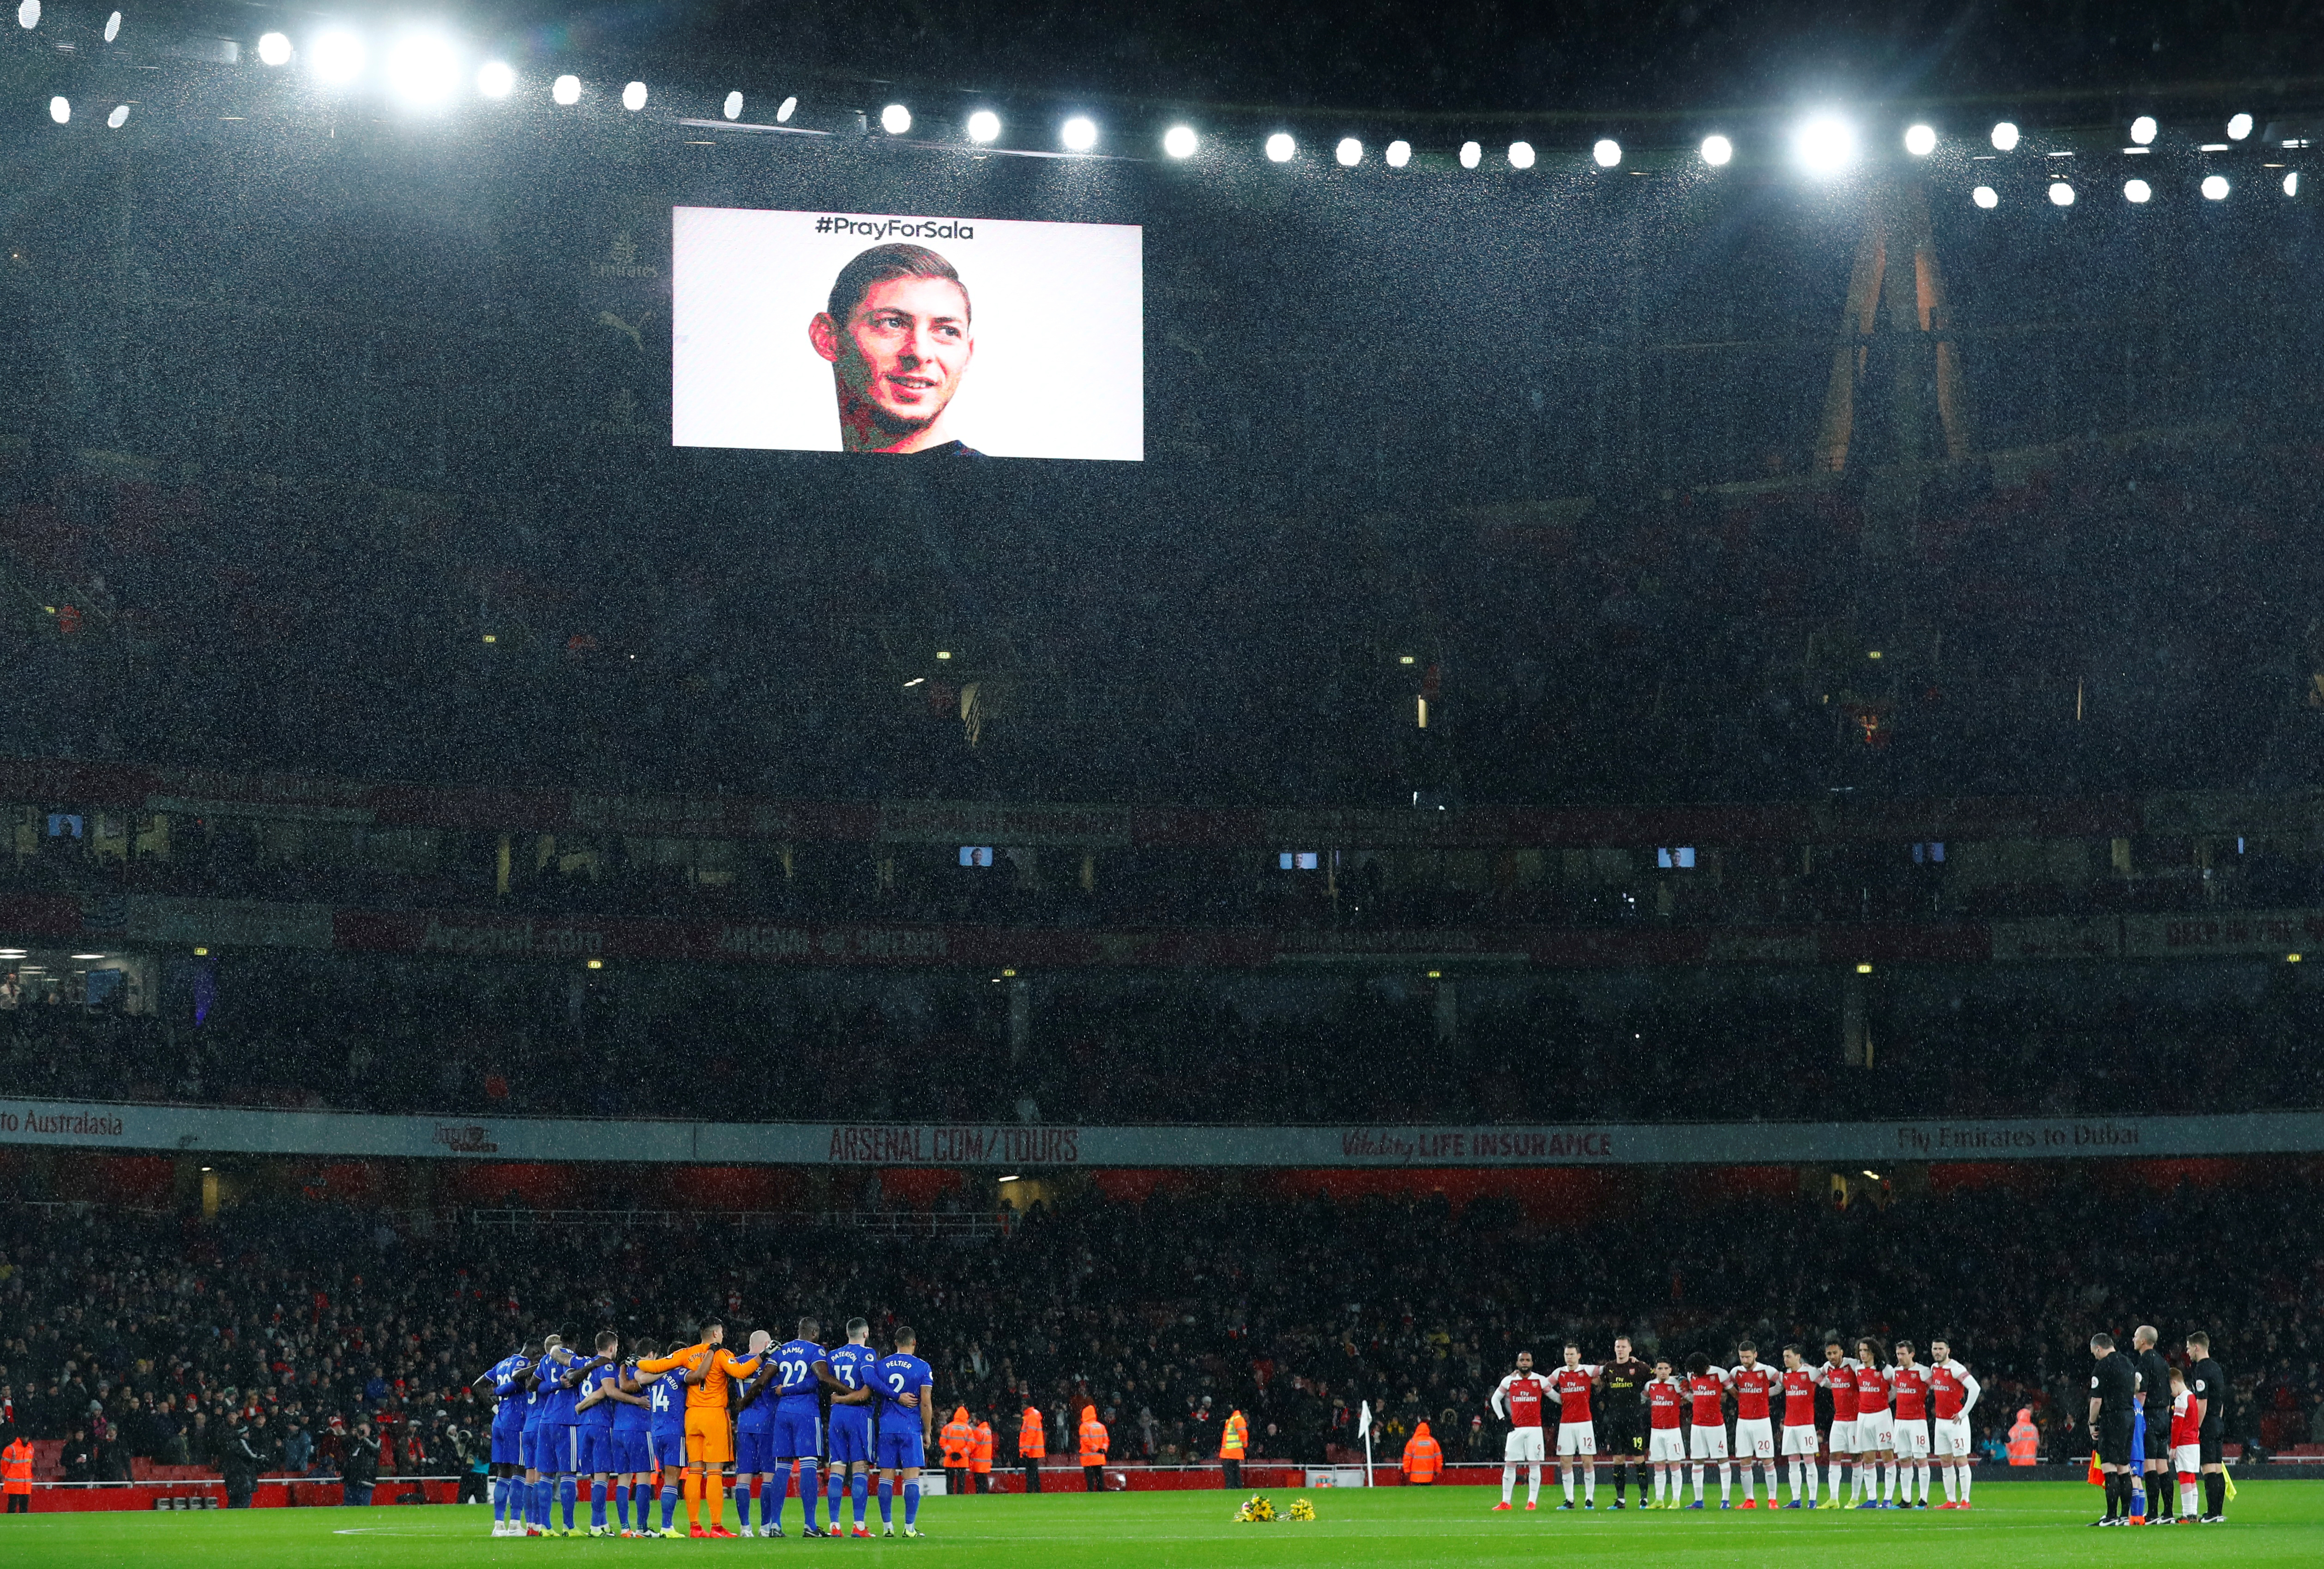 Soccer Football - Premier League - Arsenal v Cardiff City - Emirates Stadium, London, Britain - January 29, 2019 General view during a minute's silence as a tribute to Emiliano Sala before the match (REUTERS/Eddie Keogh)